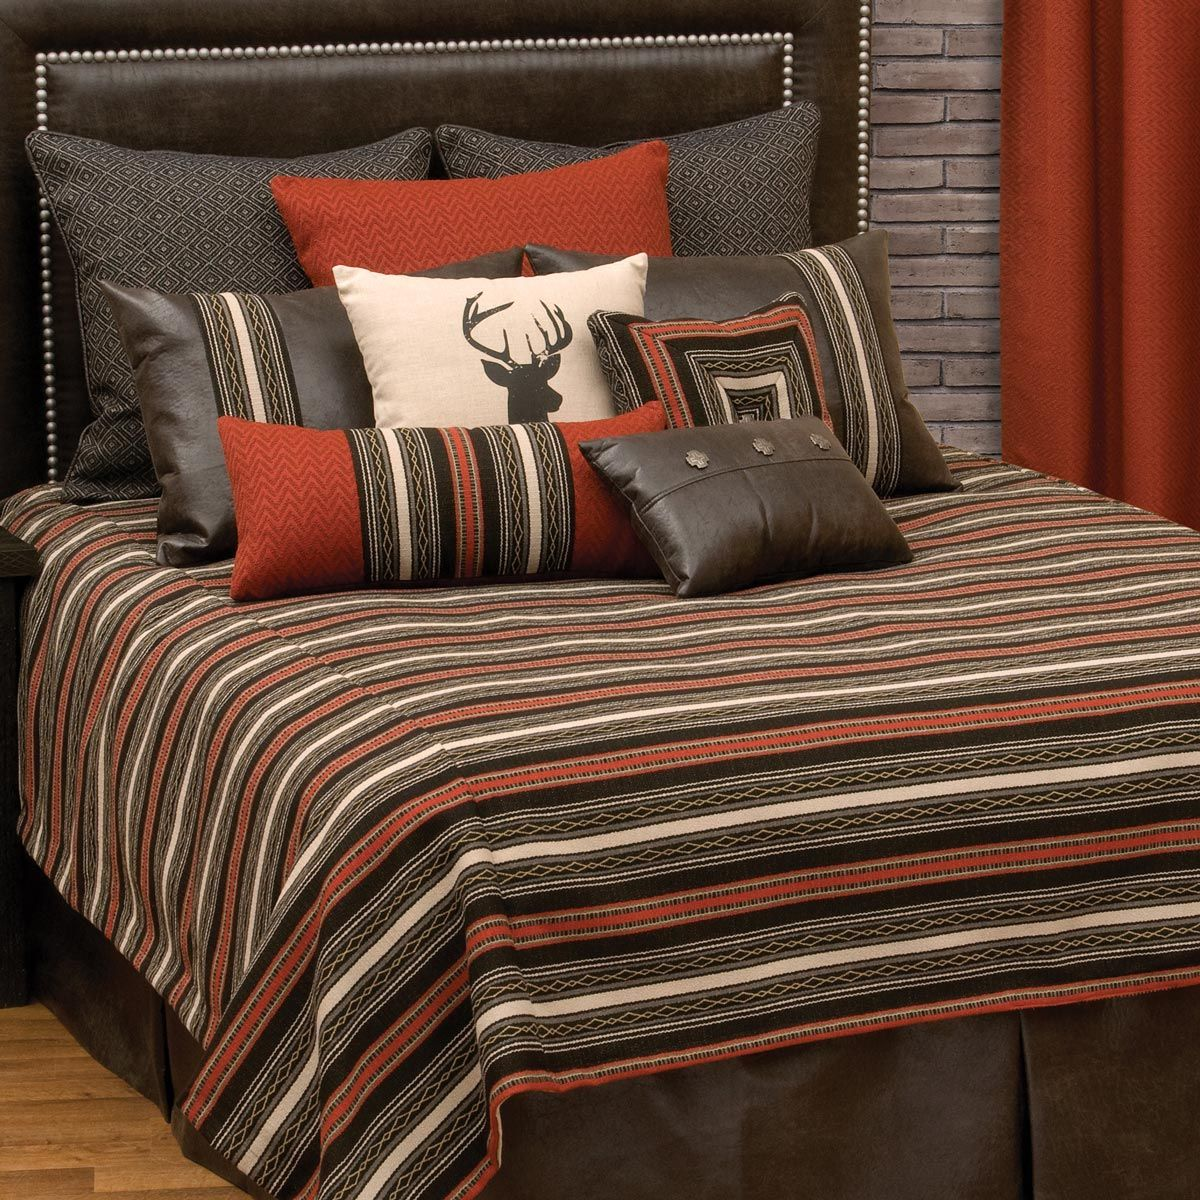 Red Pepper Value Bed Set - Queen